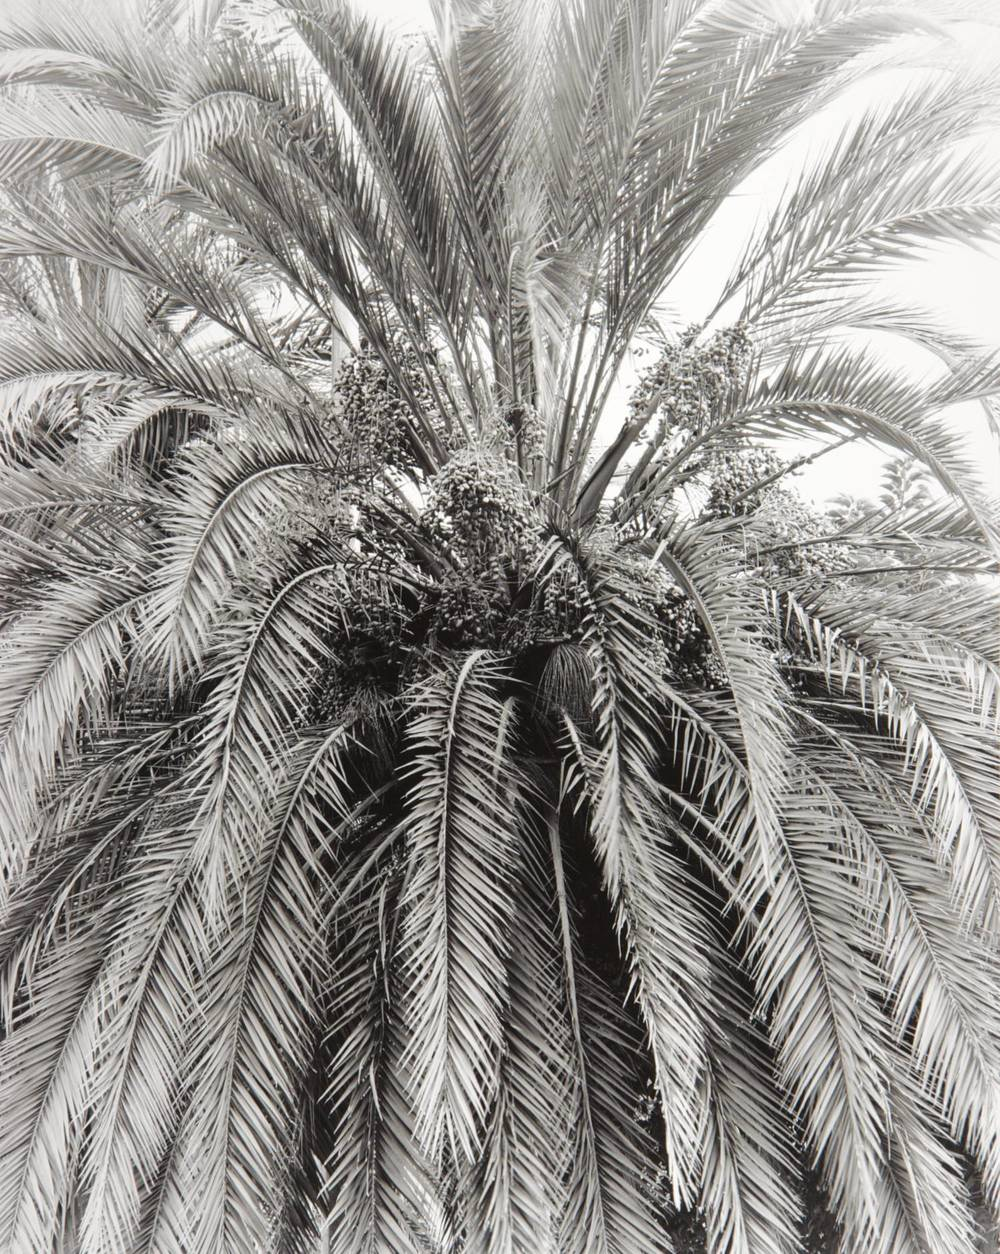 Barcelona Palm (Spain)